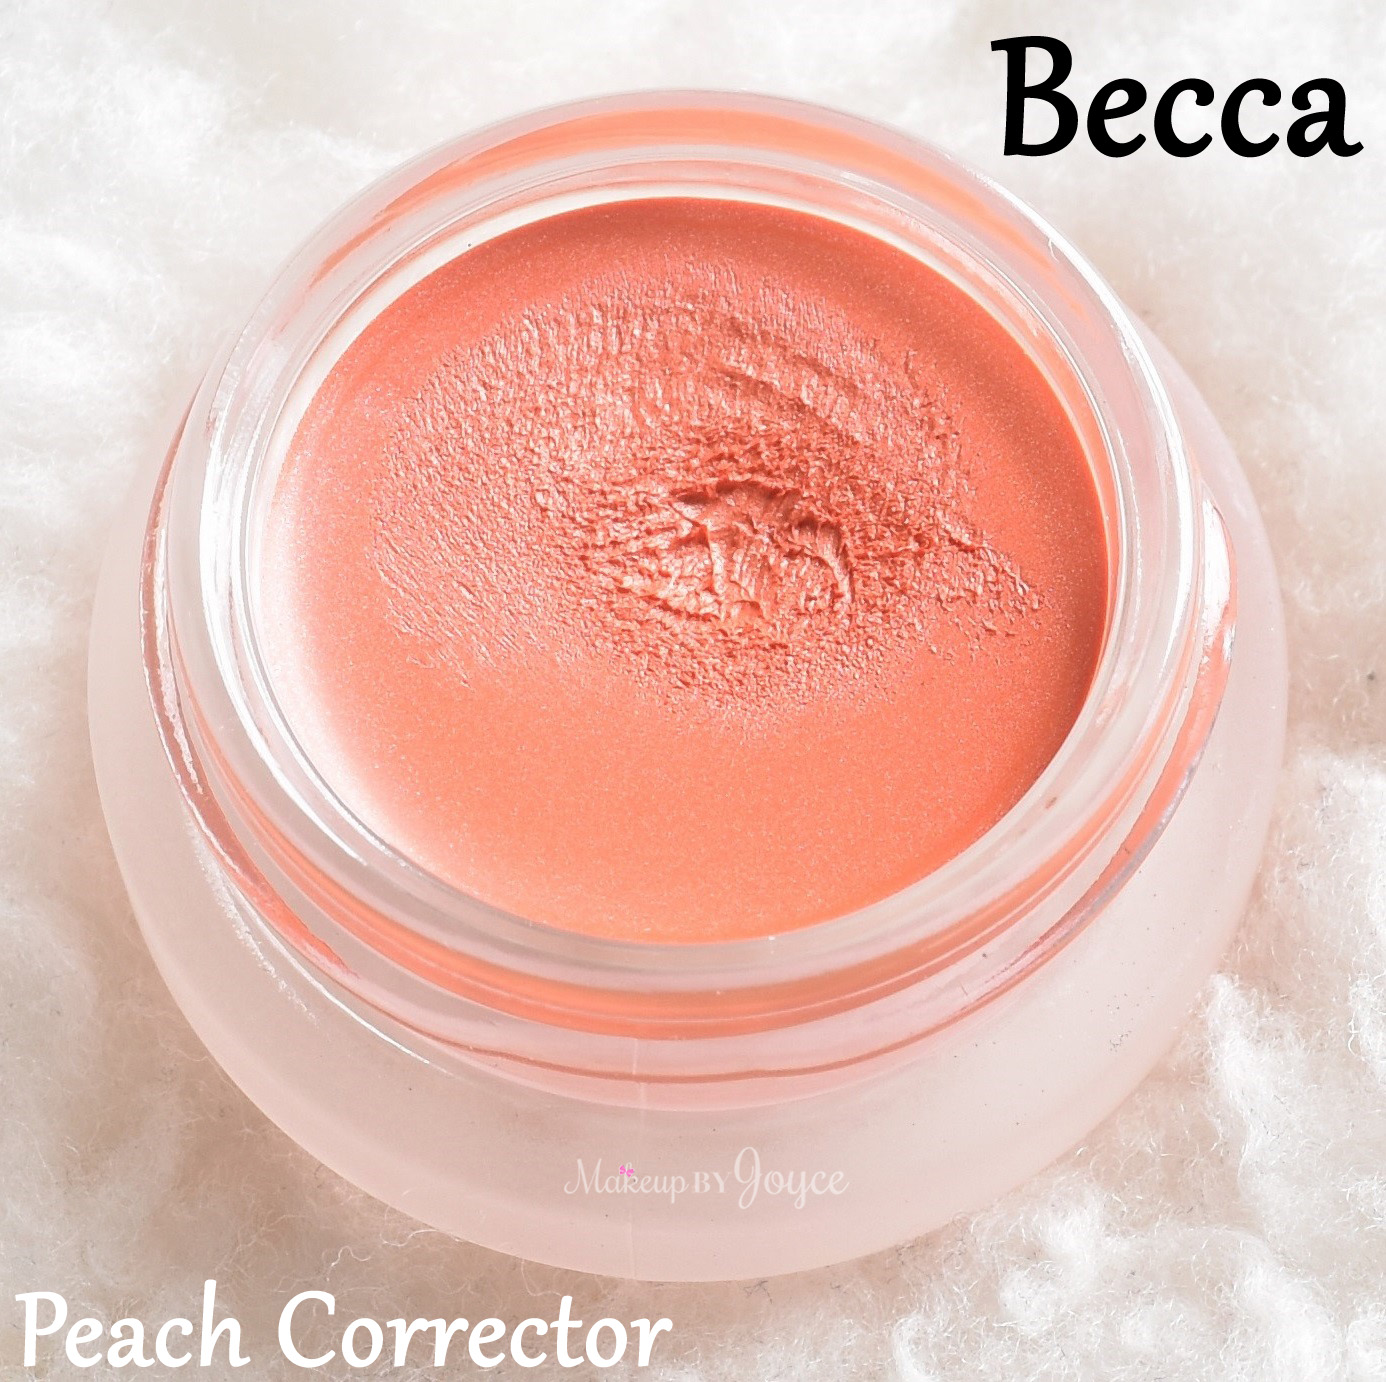 Under Eye Brightening Corrector by BECCA #22